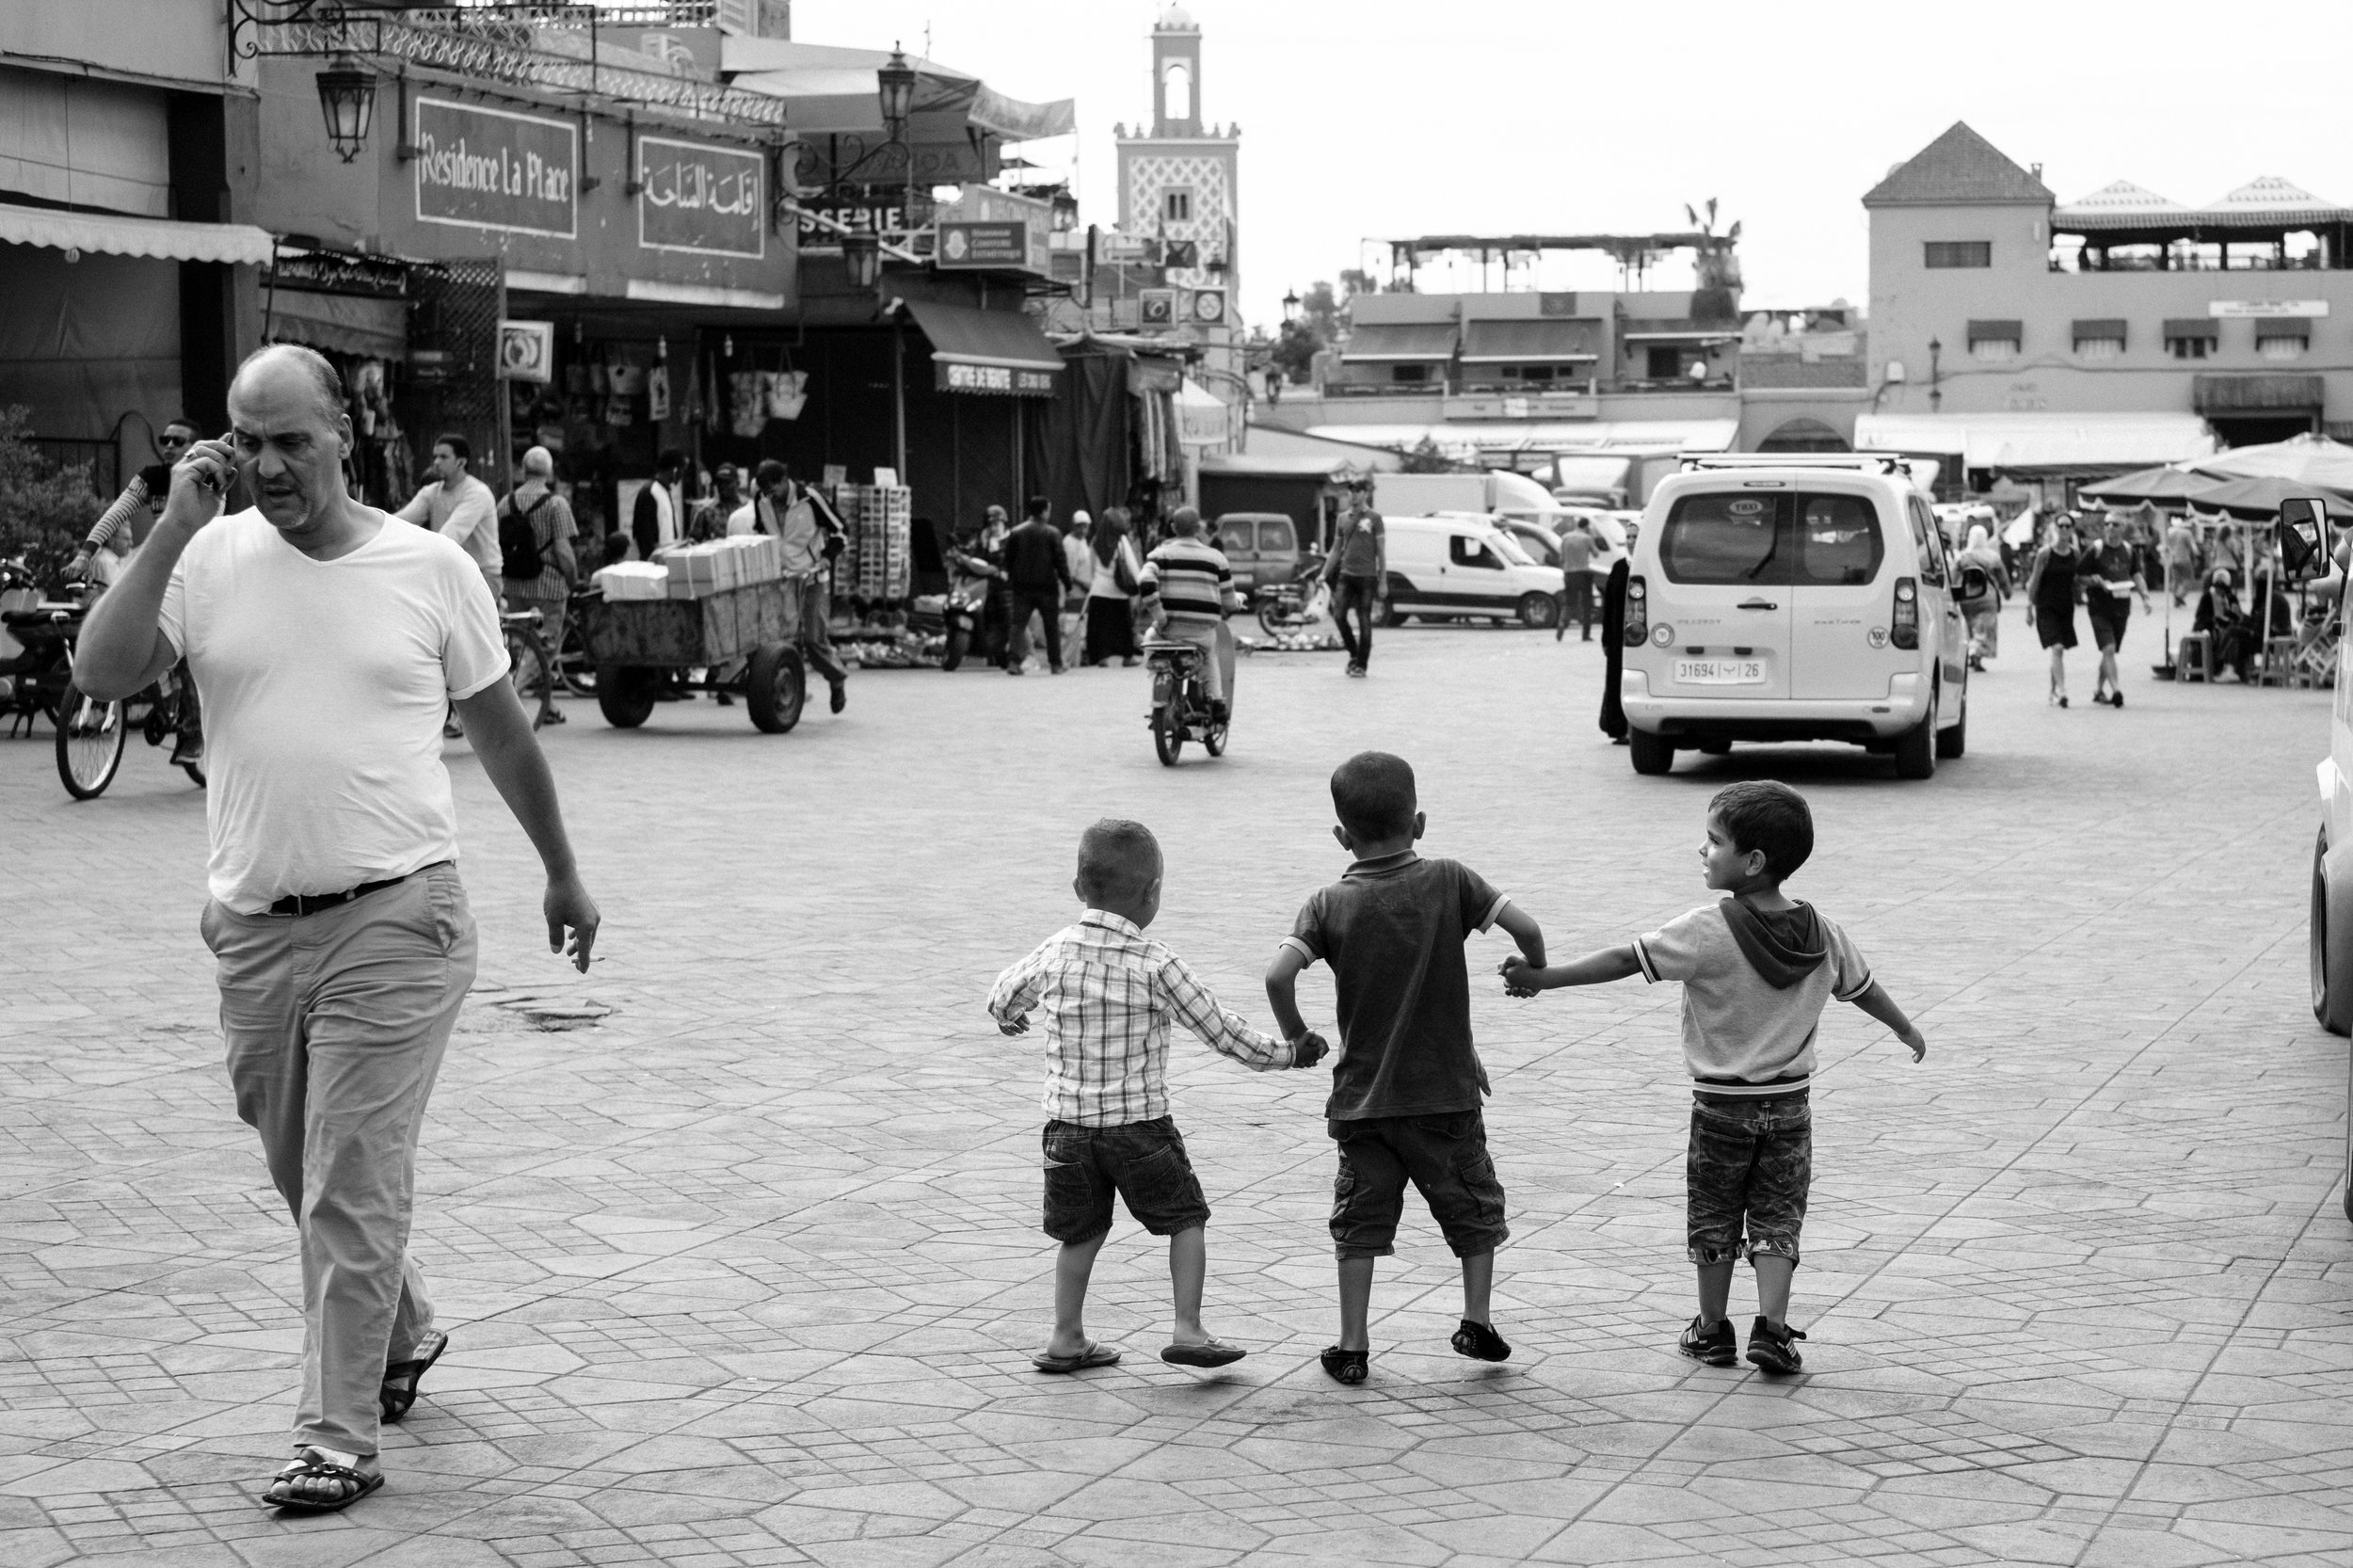 Three boys walk hand in hand while a man walks by on his mobile phone a the Jemaa el-Fna Square in the Medina District of Marrakech, Morocco